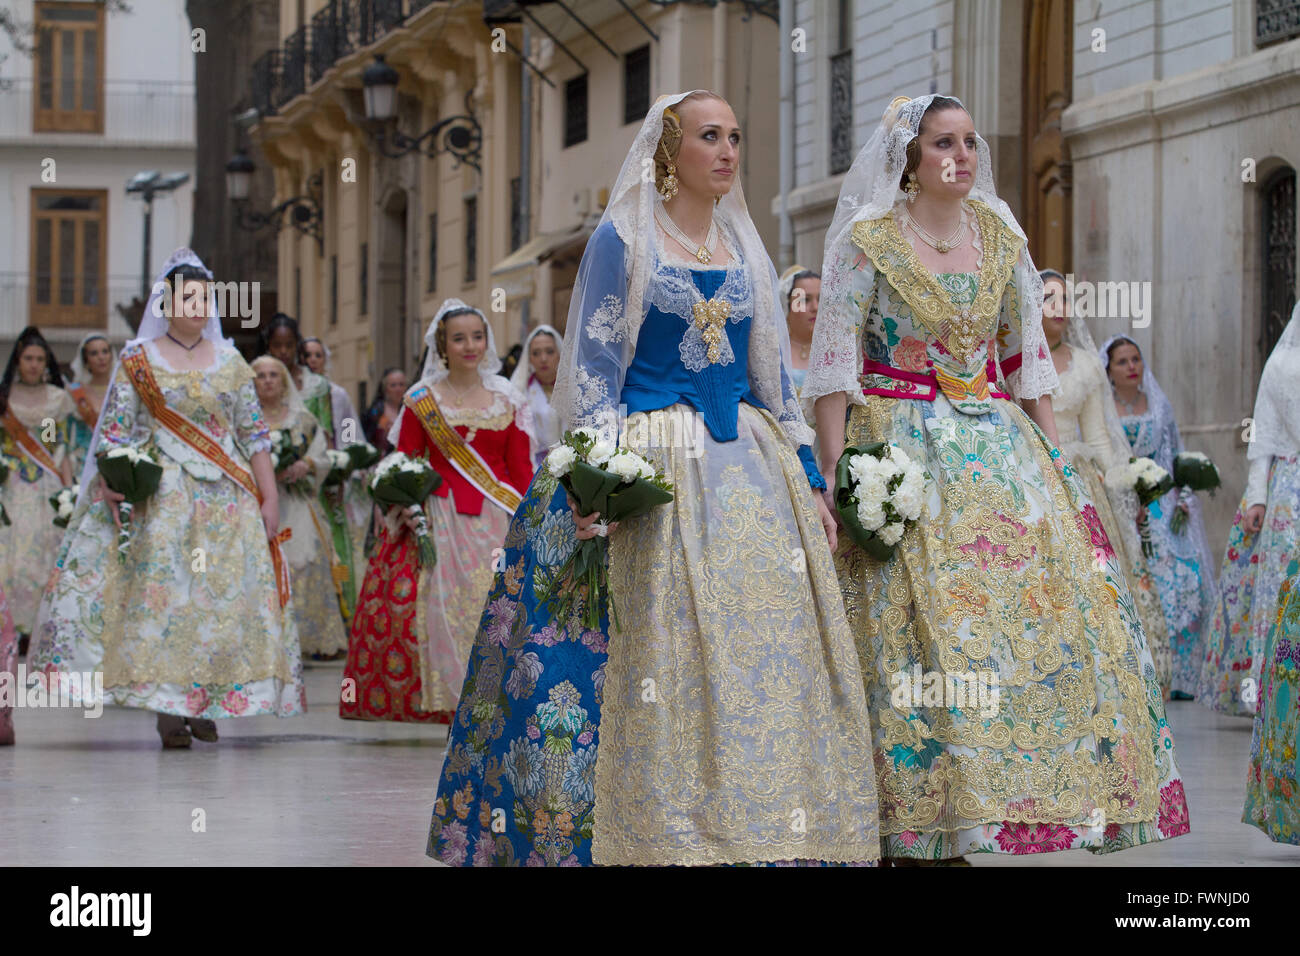 Holy procession at the annual offerings to the Lady of the Forsaken Valencia Spain - Stock Image